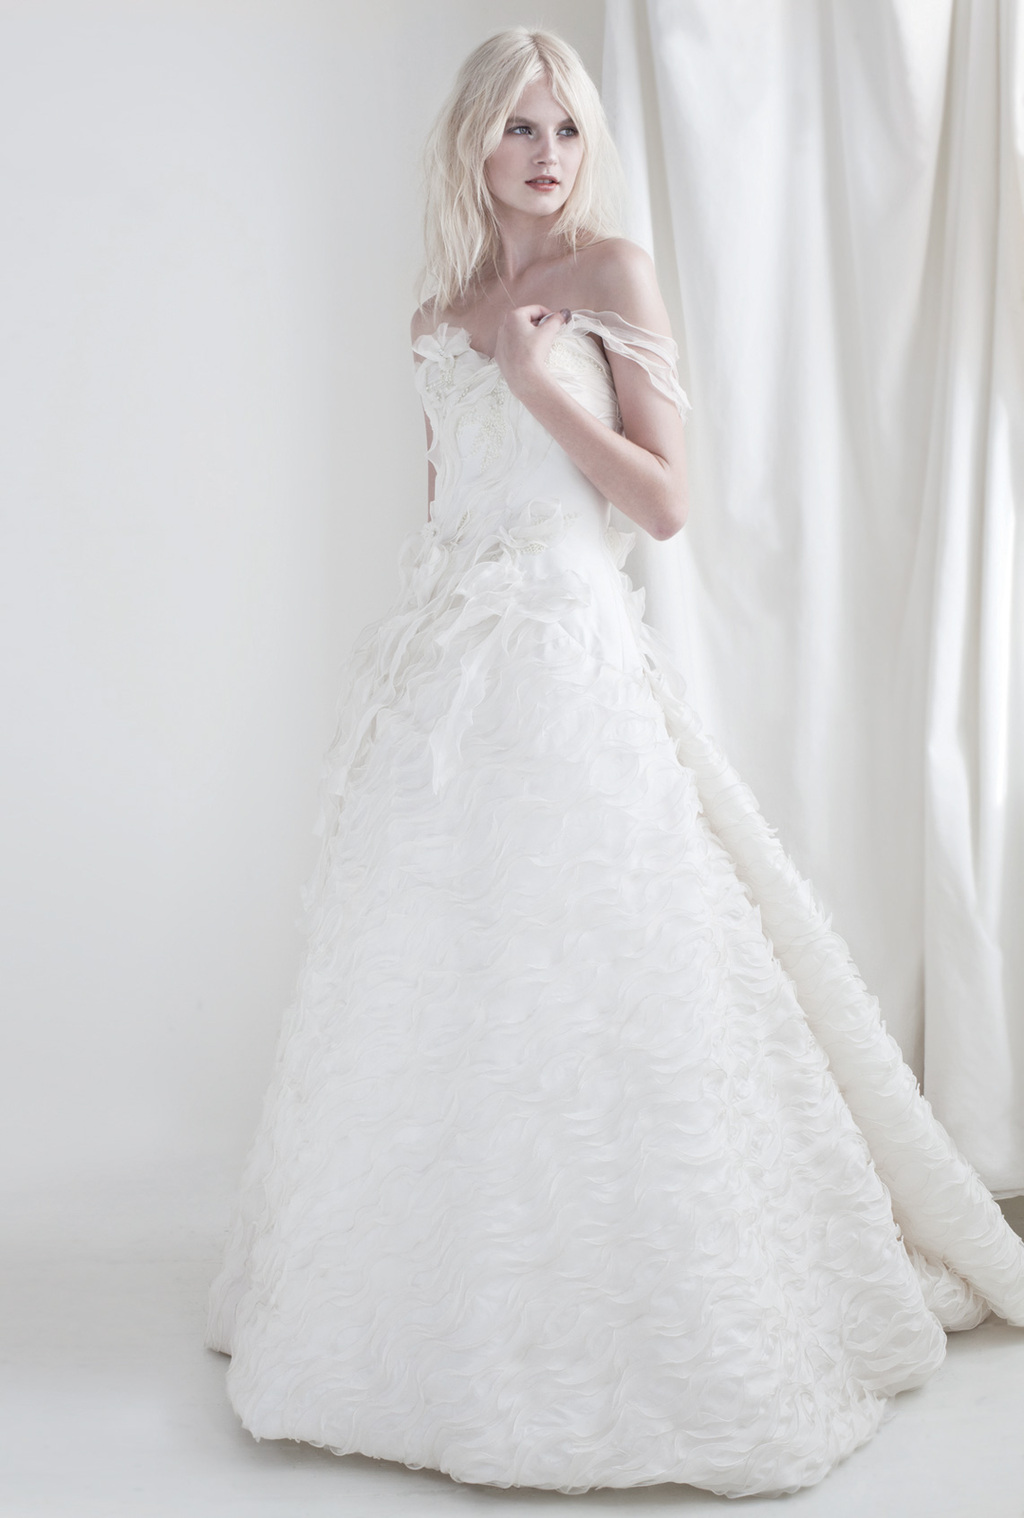 Mariana Hardwick Wedding Dress 2013 Bridal Amiel 2